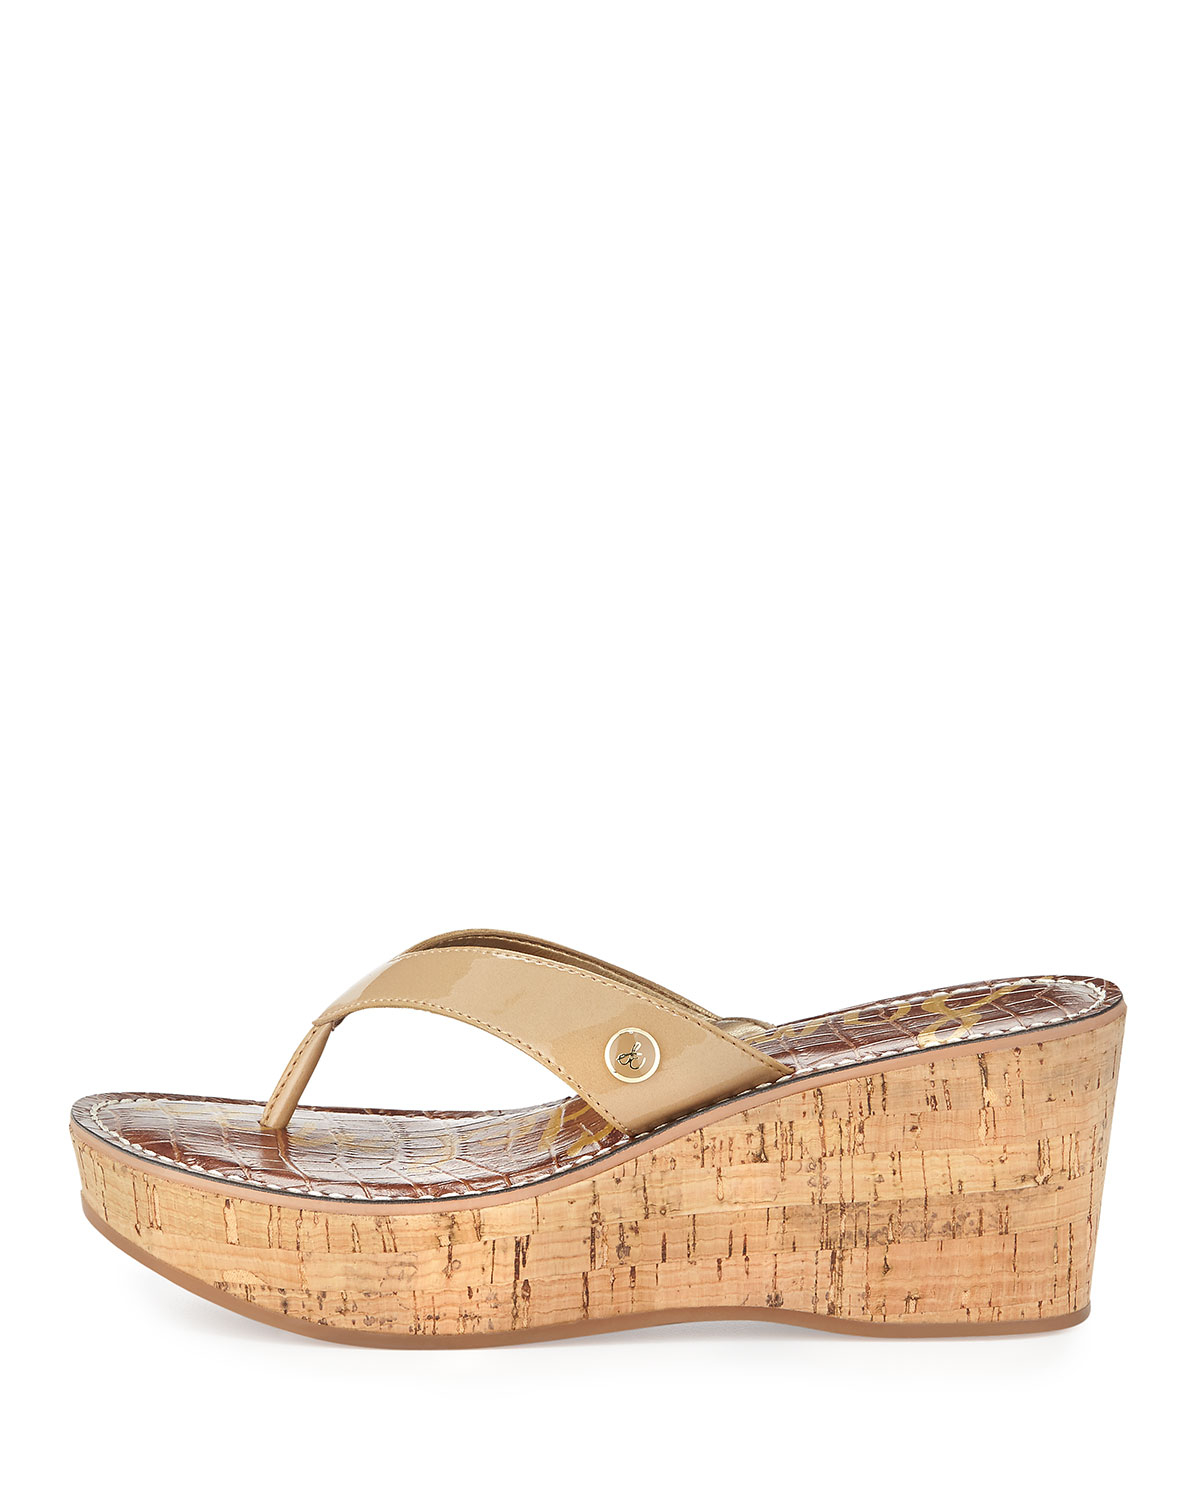 Sam Edelman Romy Metallic Leather Wedge Sandal In Metallic